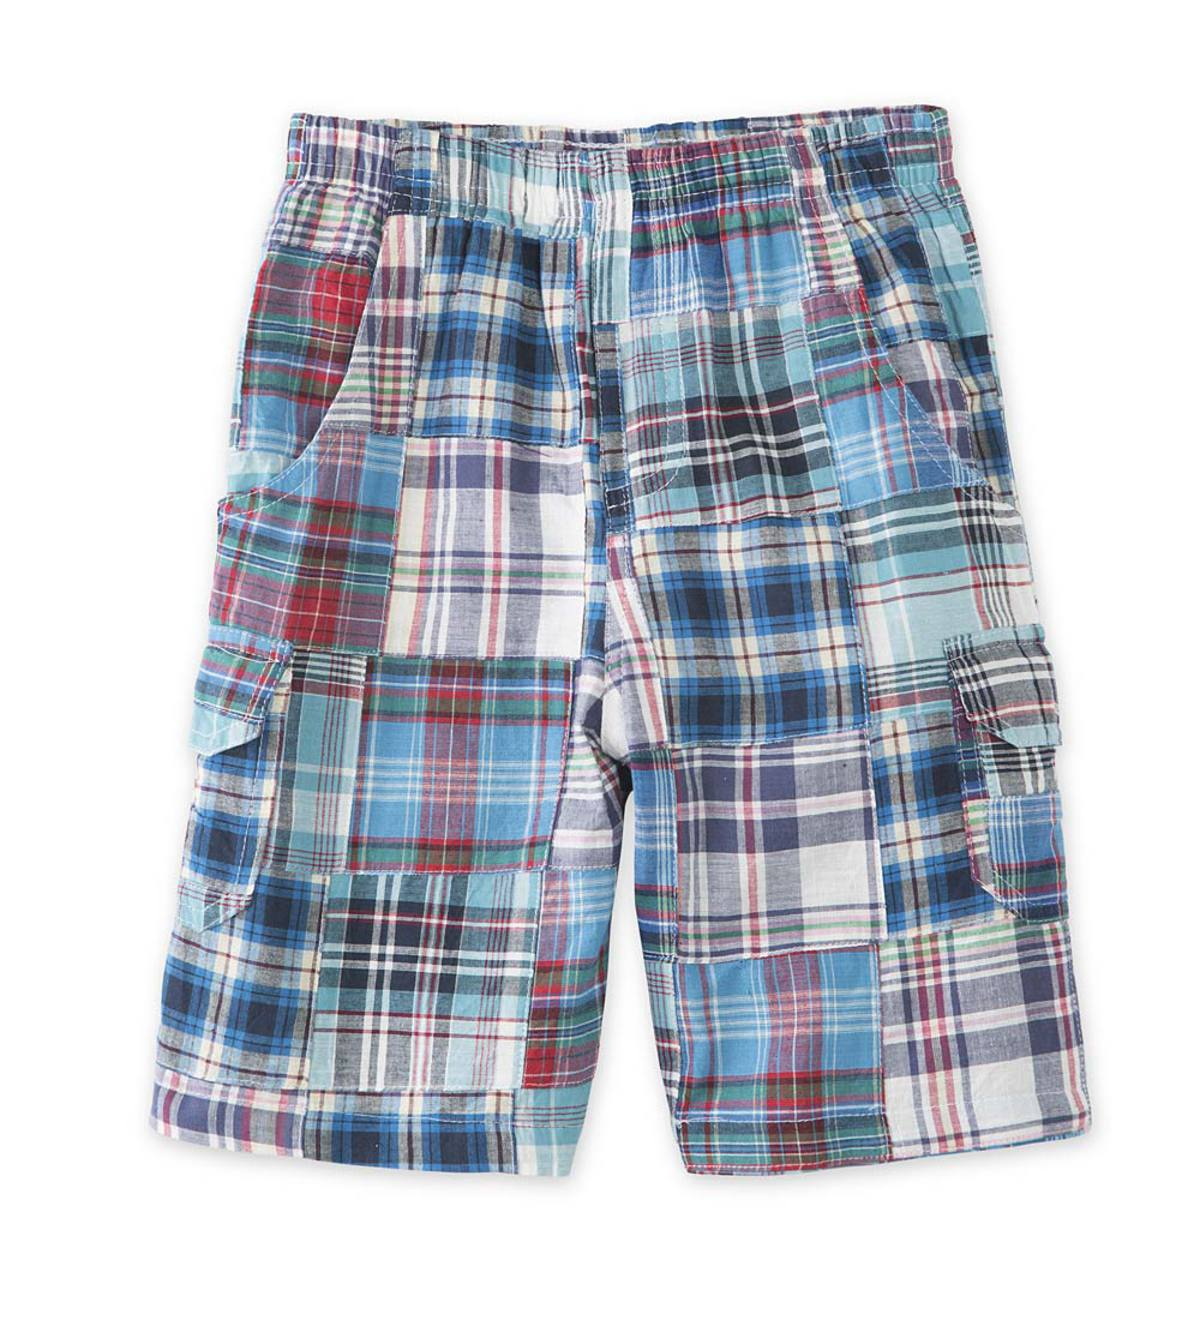 Long Plaid Cargo Shorts - MLT - 8